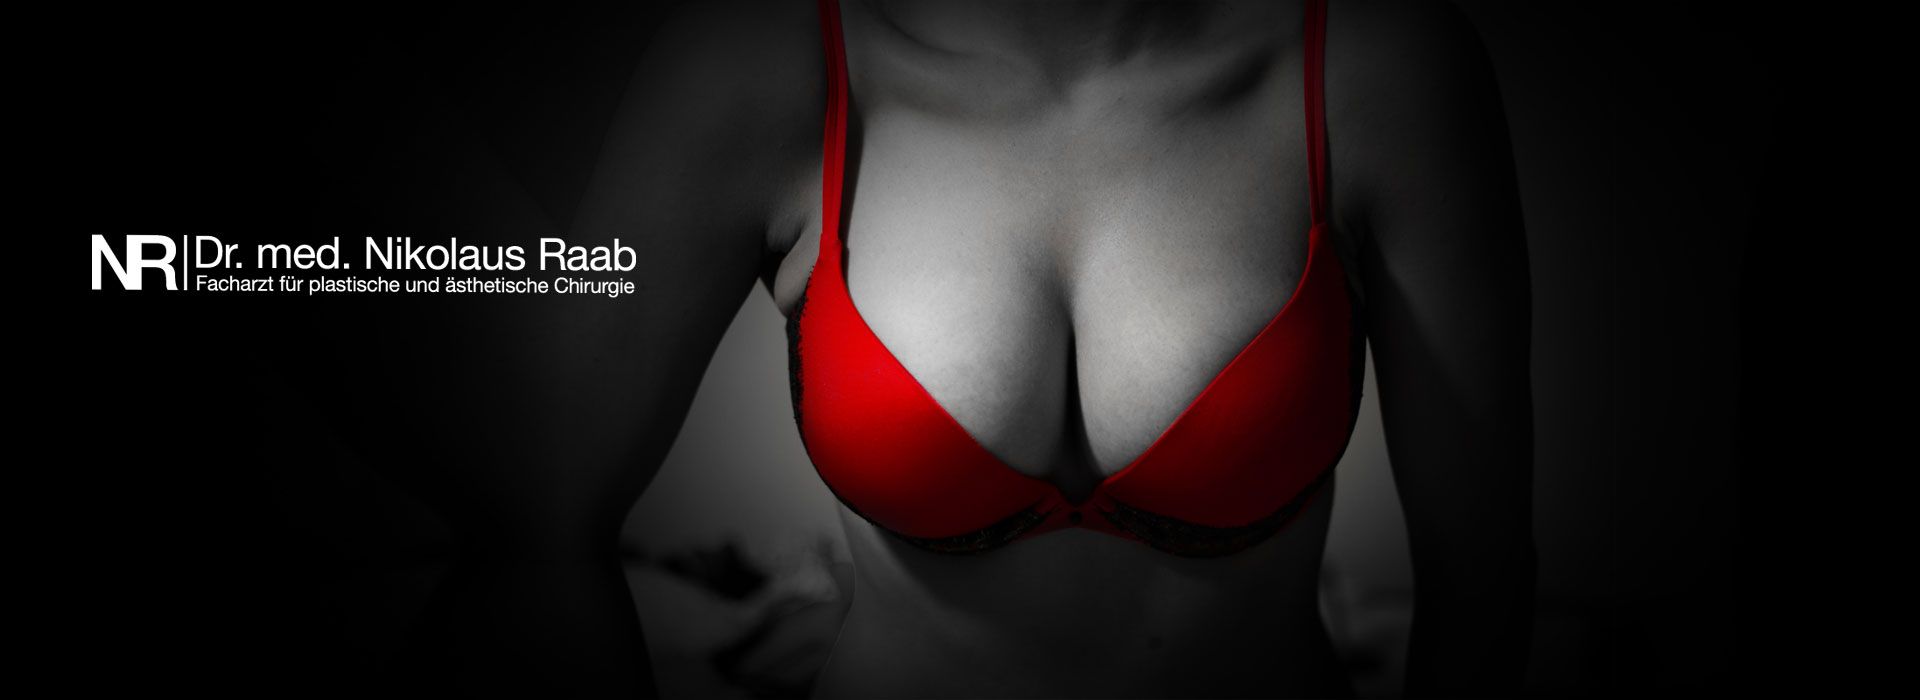 Breast augmentation Kuwait - Breast shaping Kuwait - Breast surgery Kuwait